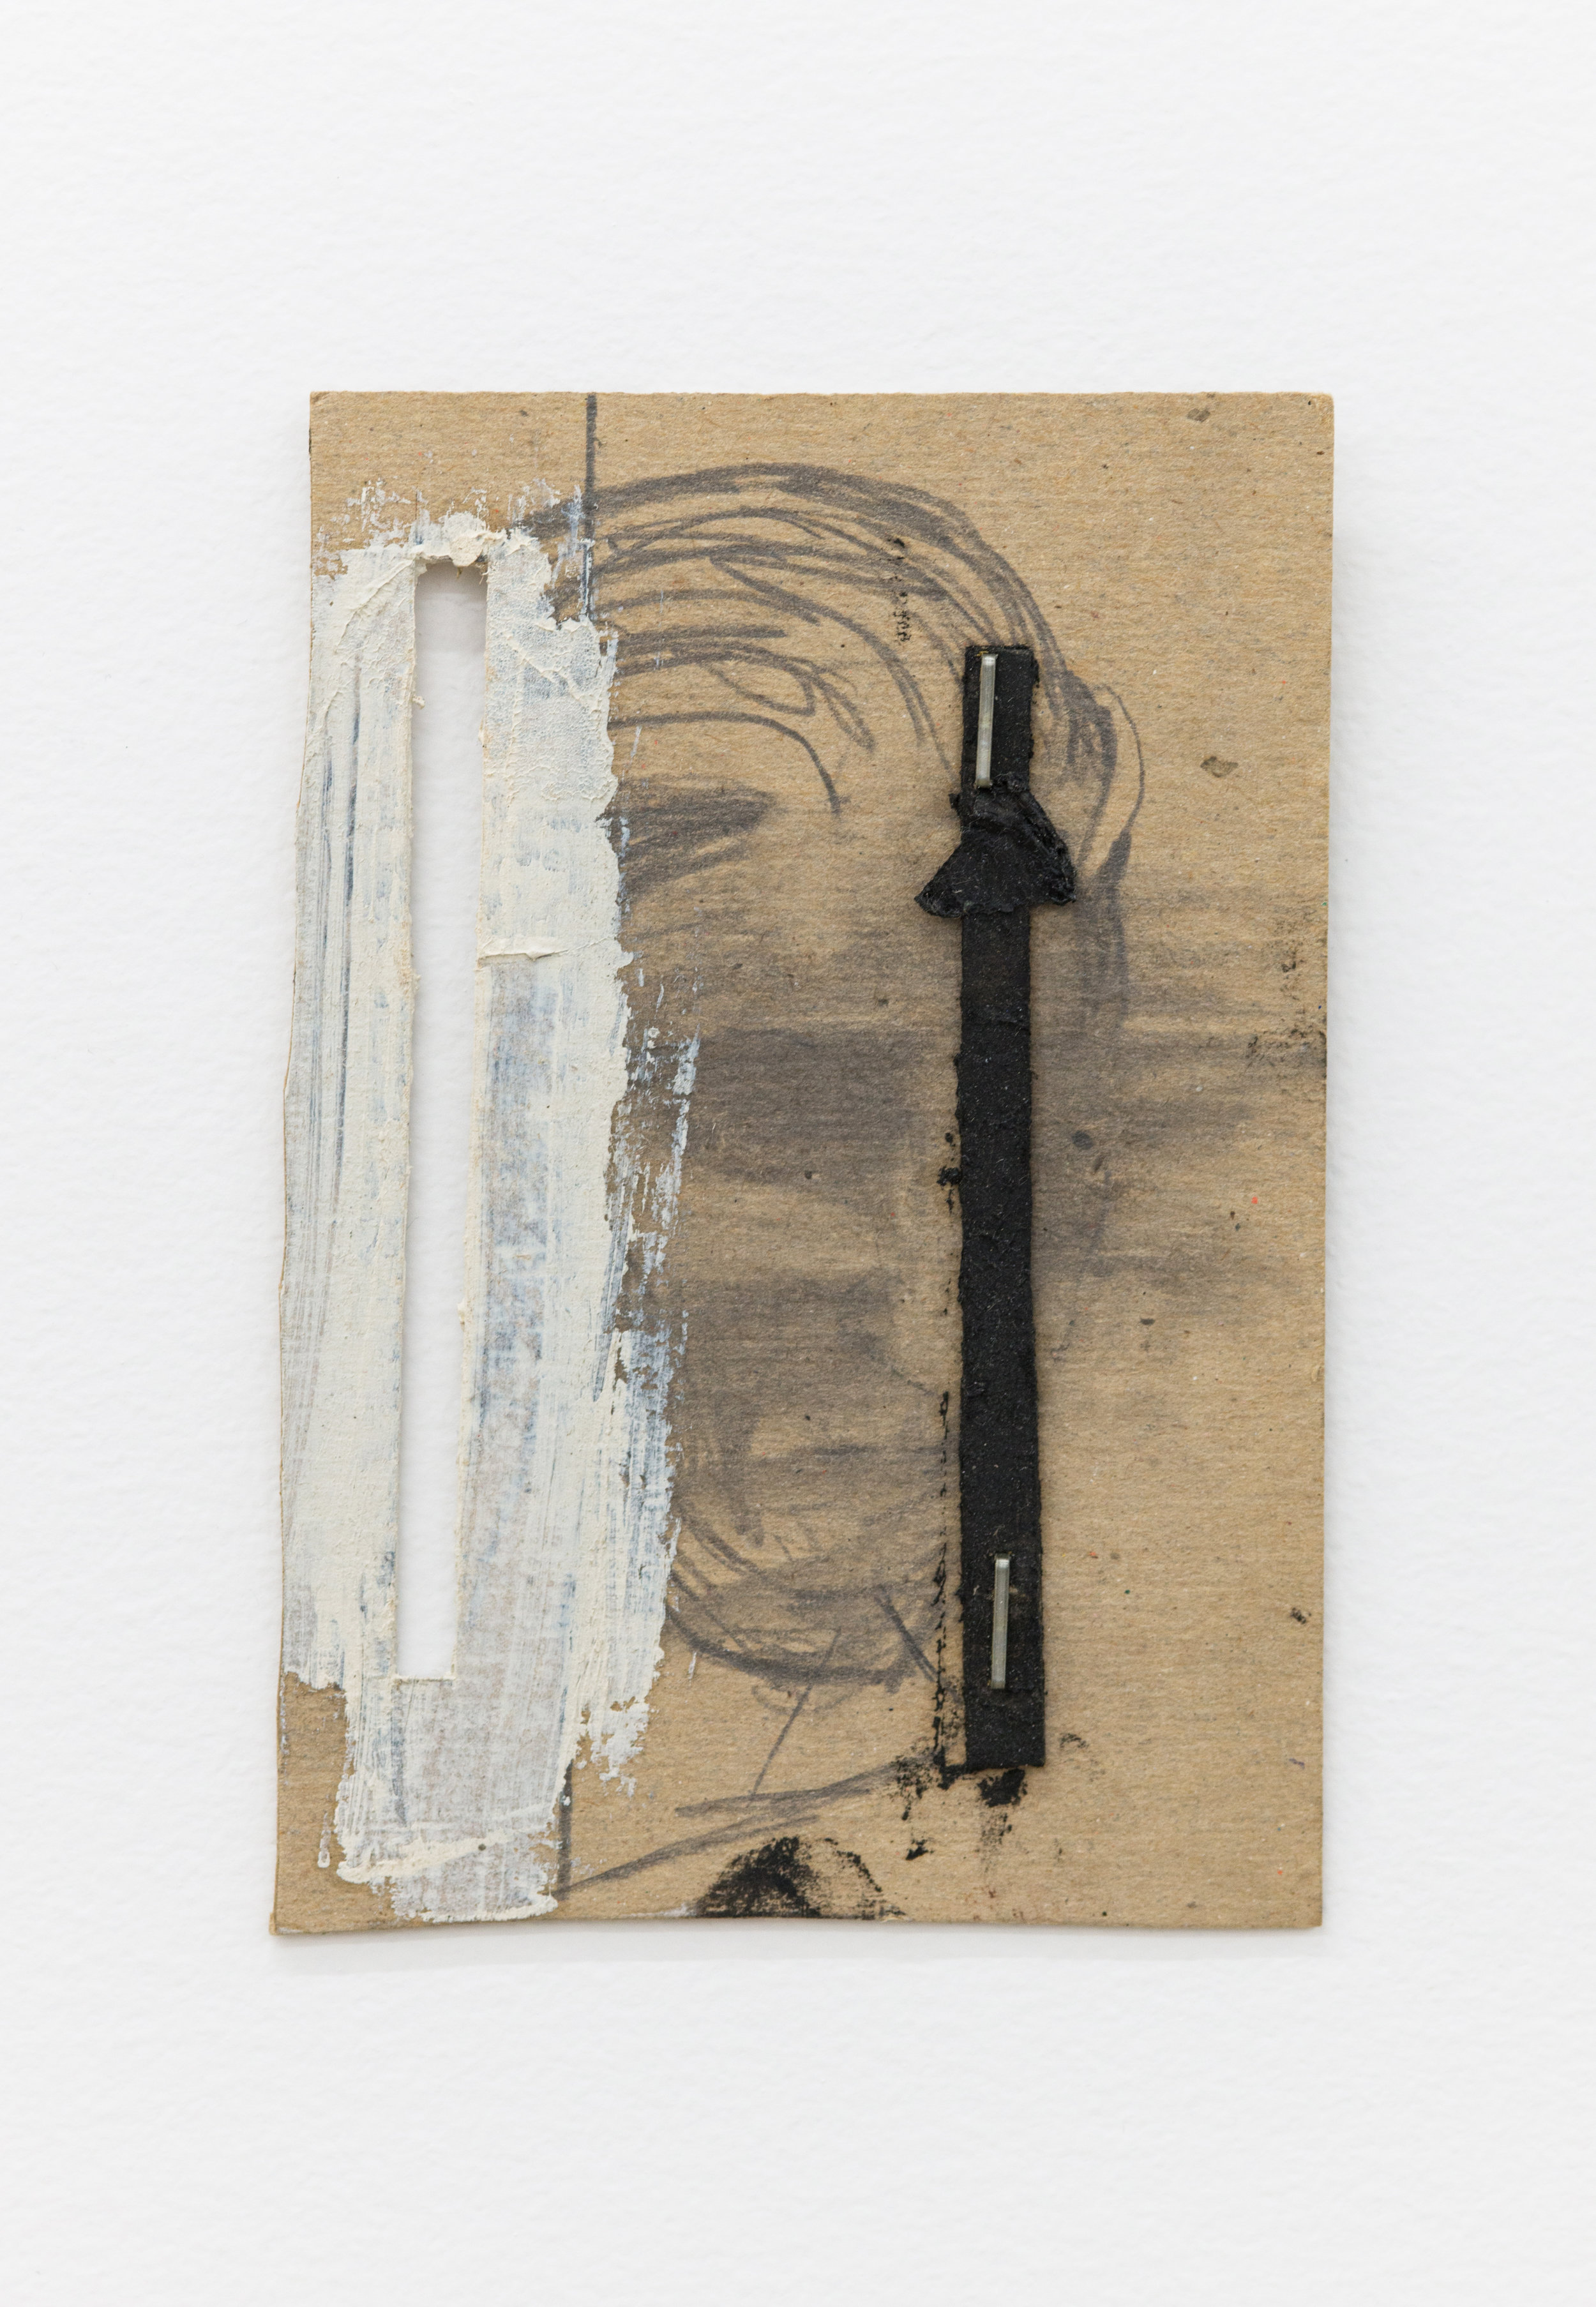 Louise Fishman   Untitled,  1994 Acrylic paint, pencil, leather on cardboard, staples 5.5 x 3.75 x .25 inches